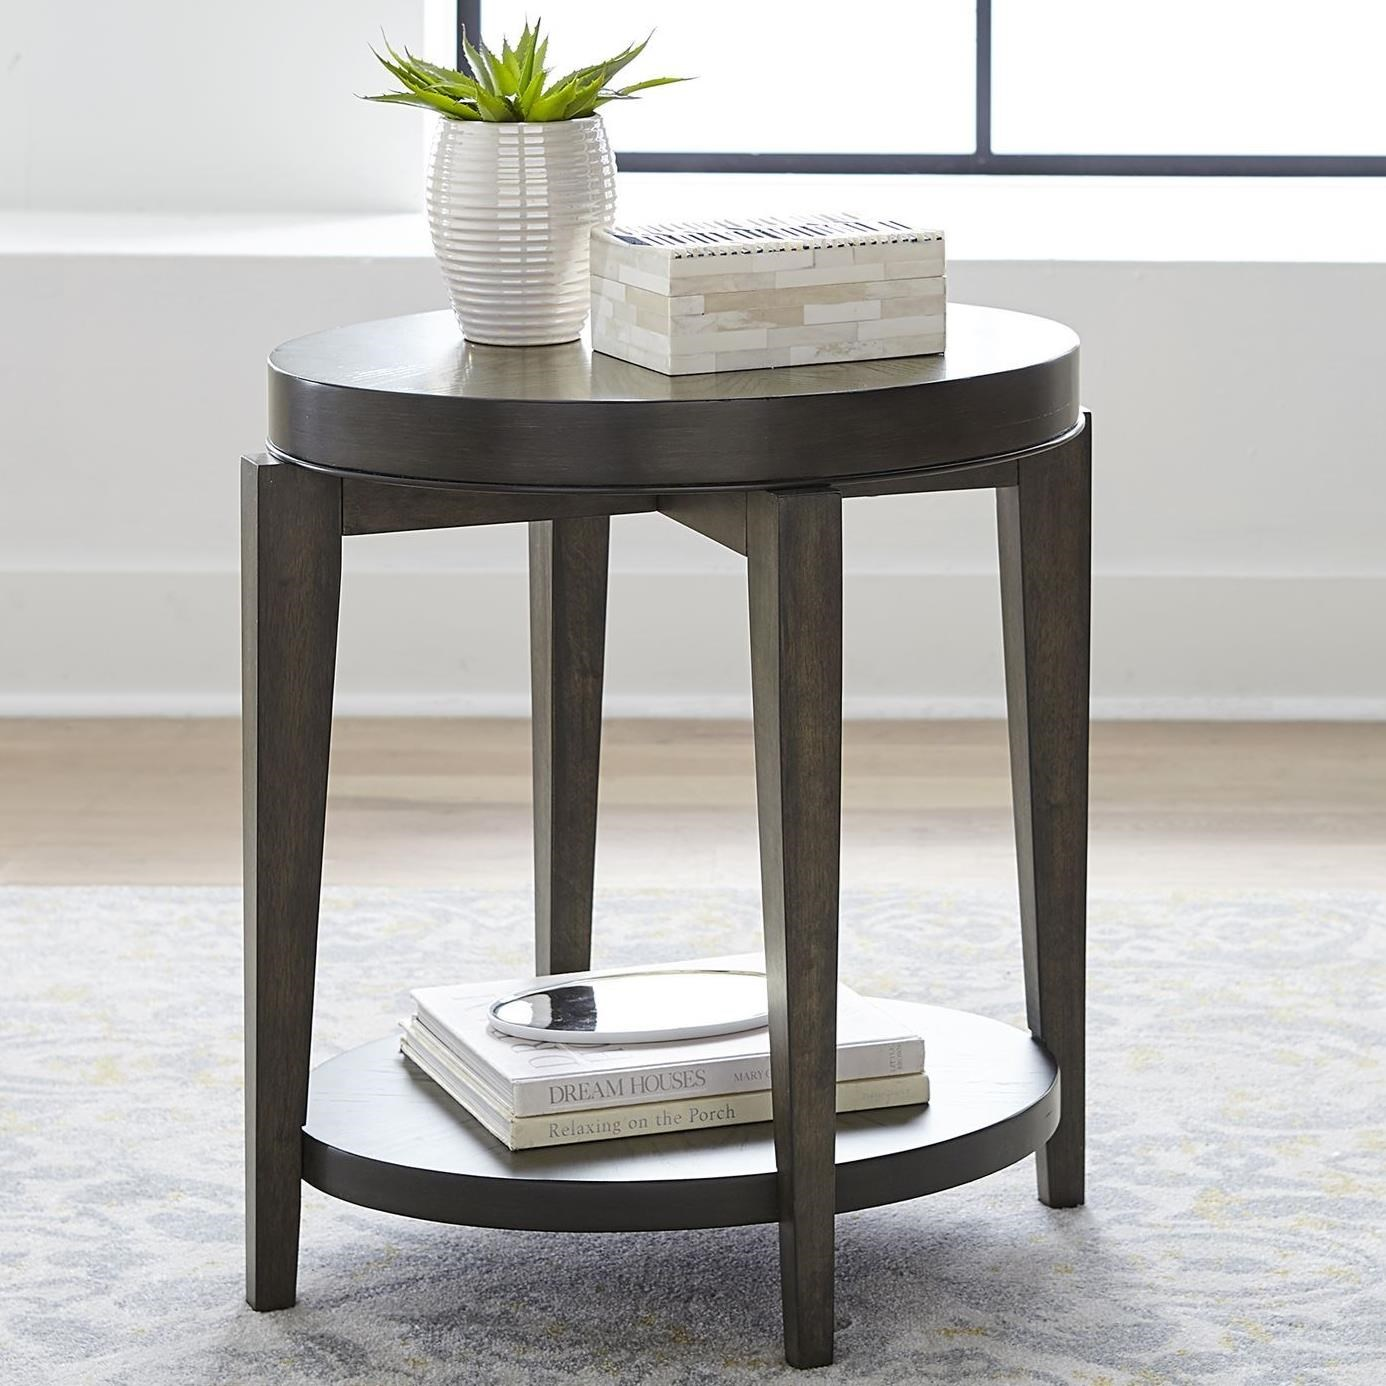 Penton Oval Chairside Table by Liberty Furniture at Darvin Furniture